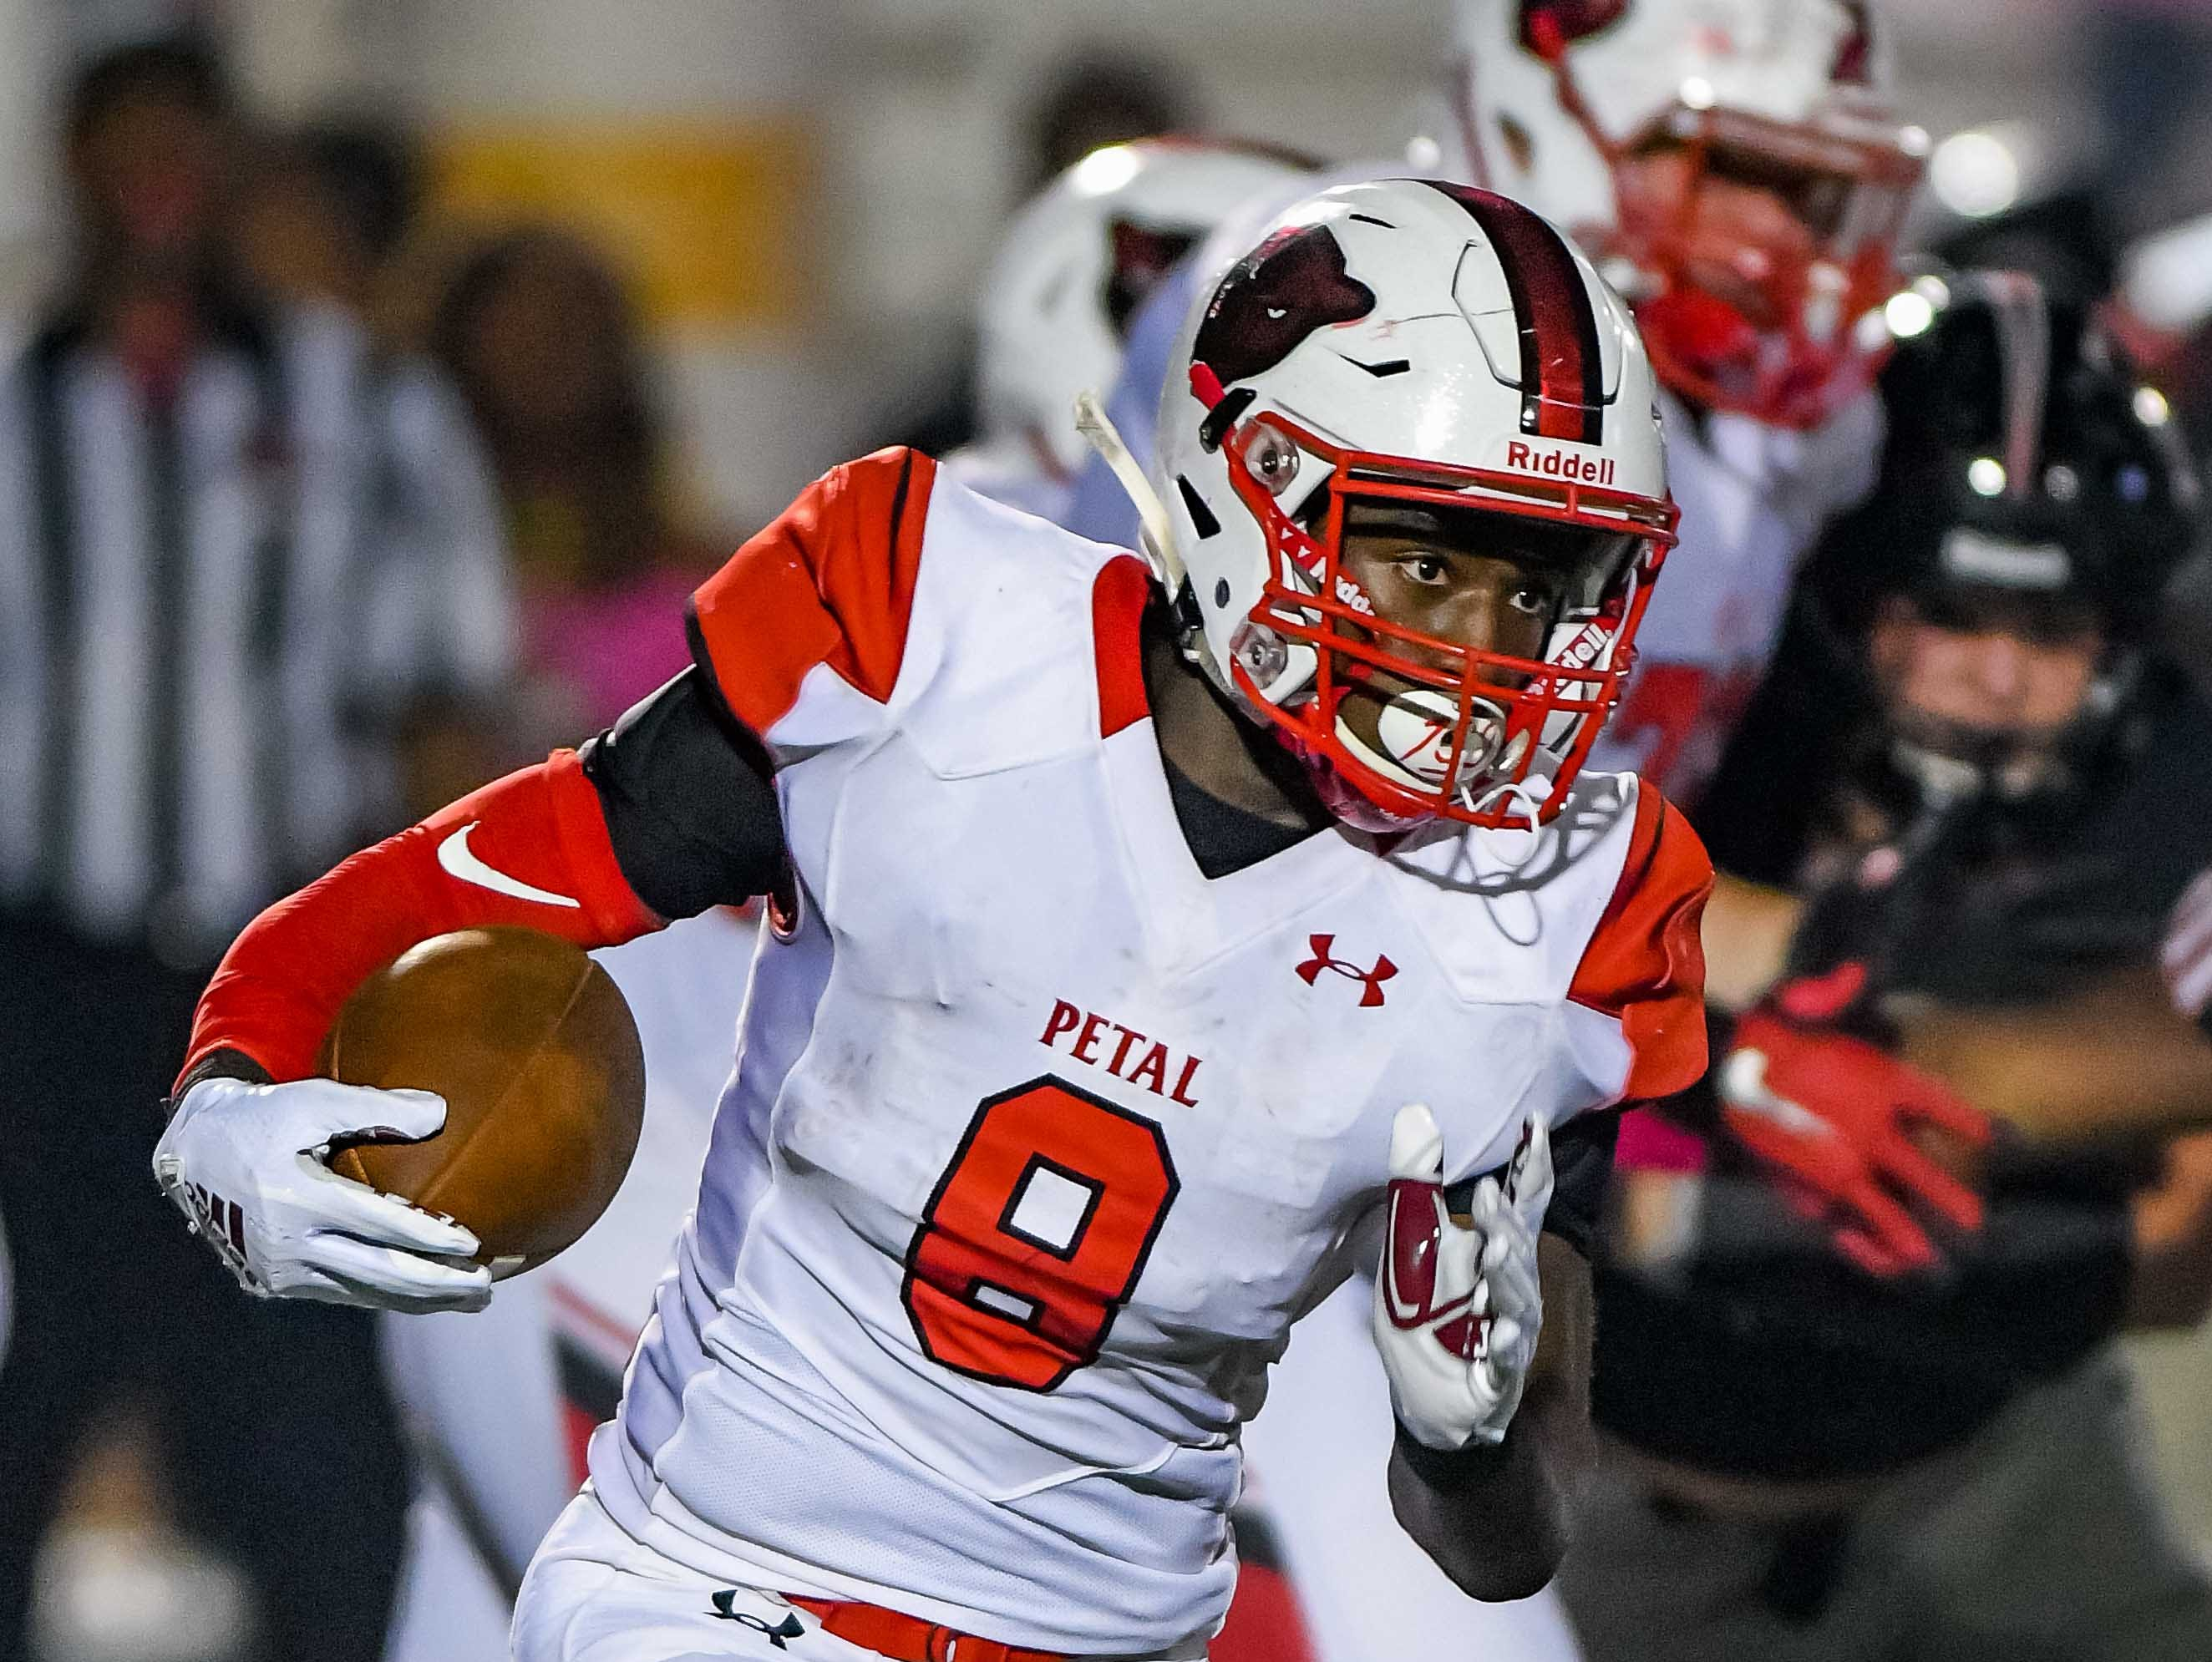 Petal's Micah McGowan (8) runs the ball against Brandon during game action held Friday October 5, 2018 in Brandon, Mississippi.(Photo/Bob Smith-For the Clarion Ledger)